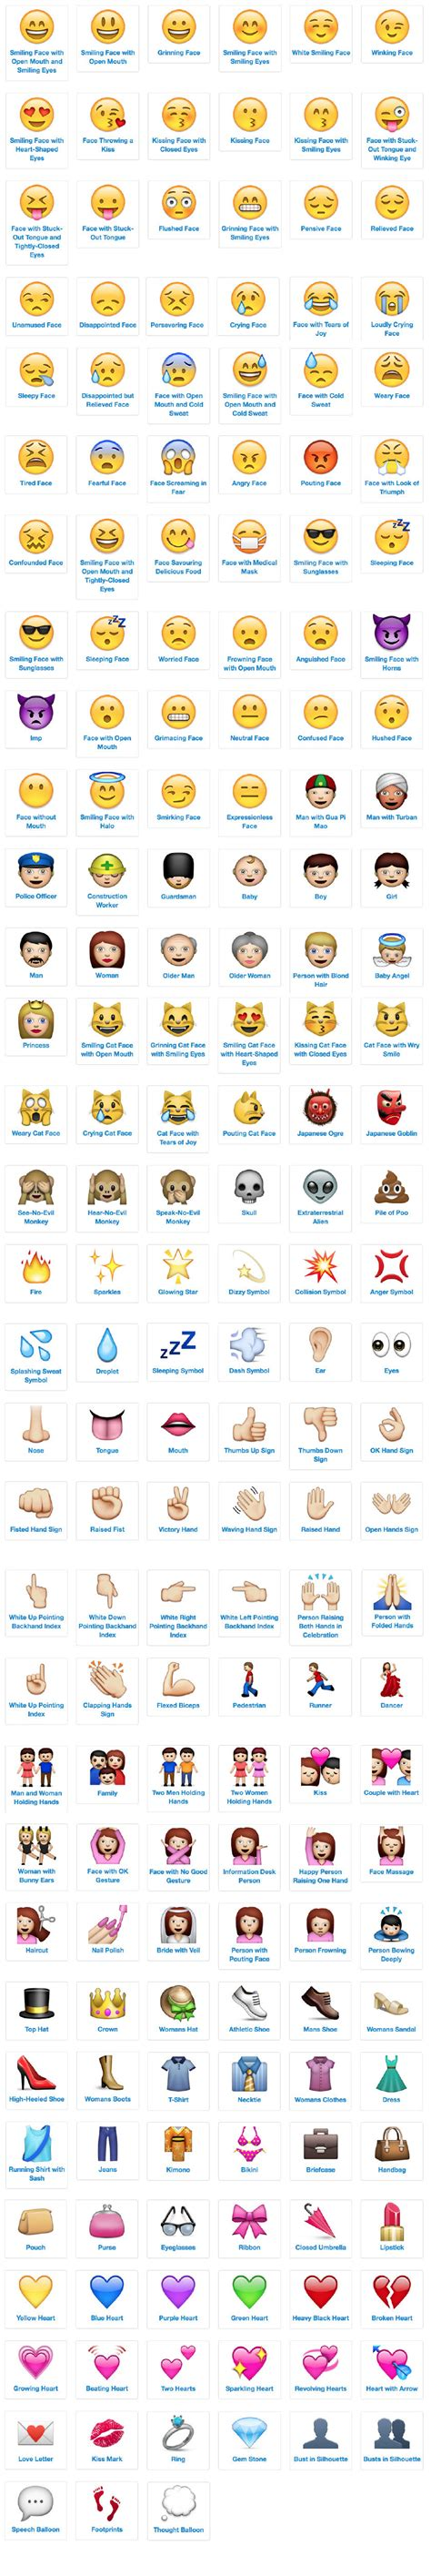 emoji list emoji people icons list with meanings and definitions